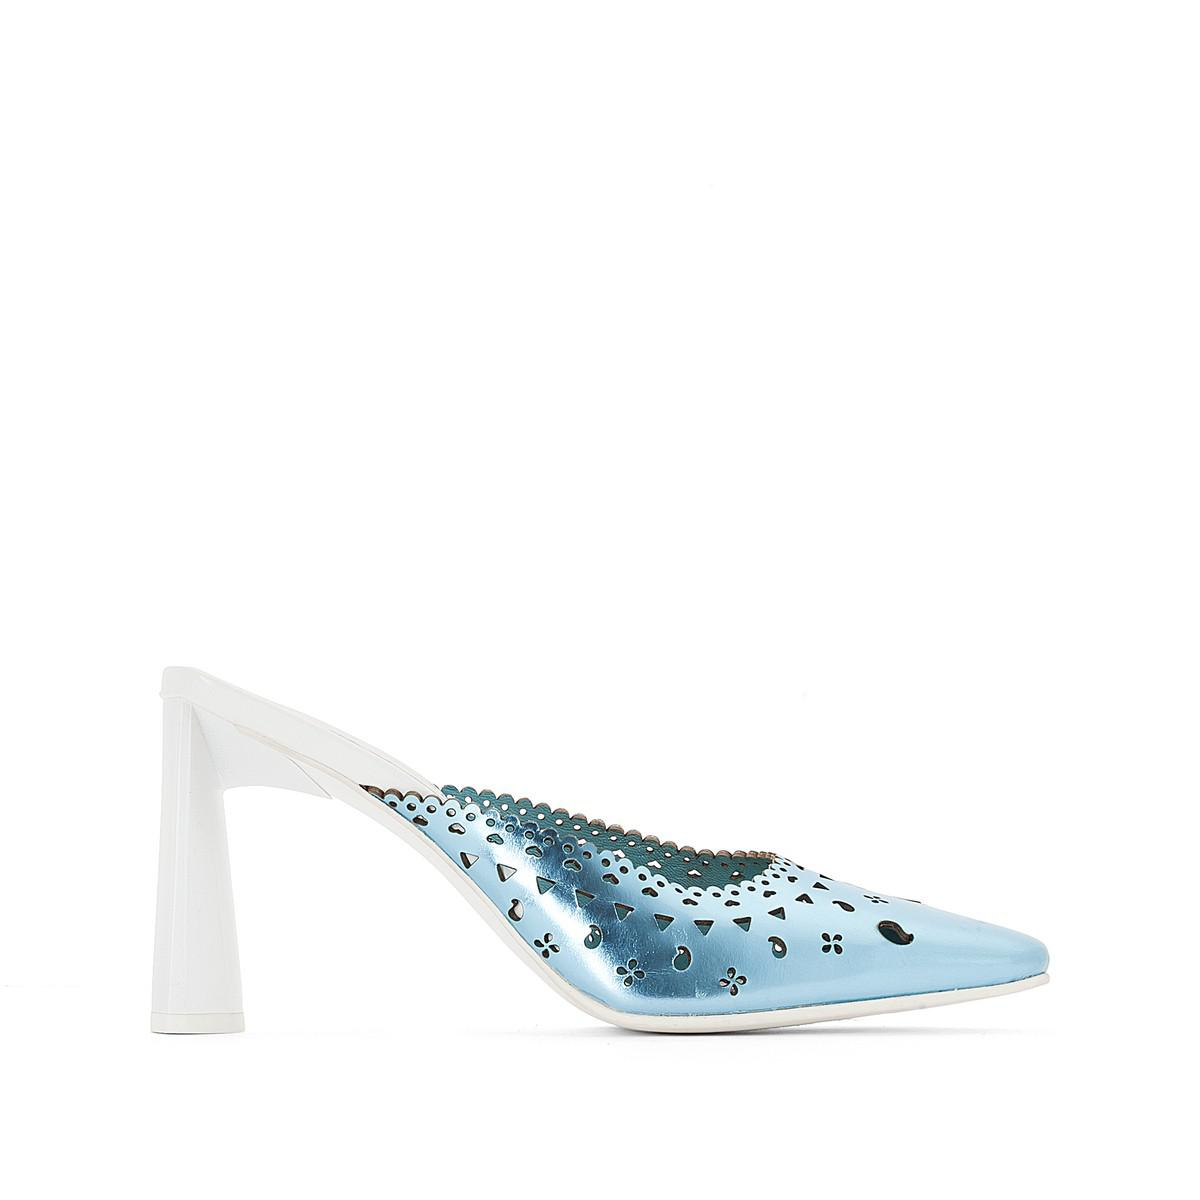 magasin d'usine dce6d a1ac6 Lyst - La Redoute High Heel Openwork Mules in Blue